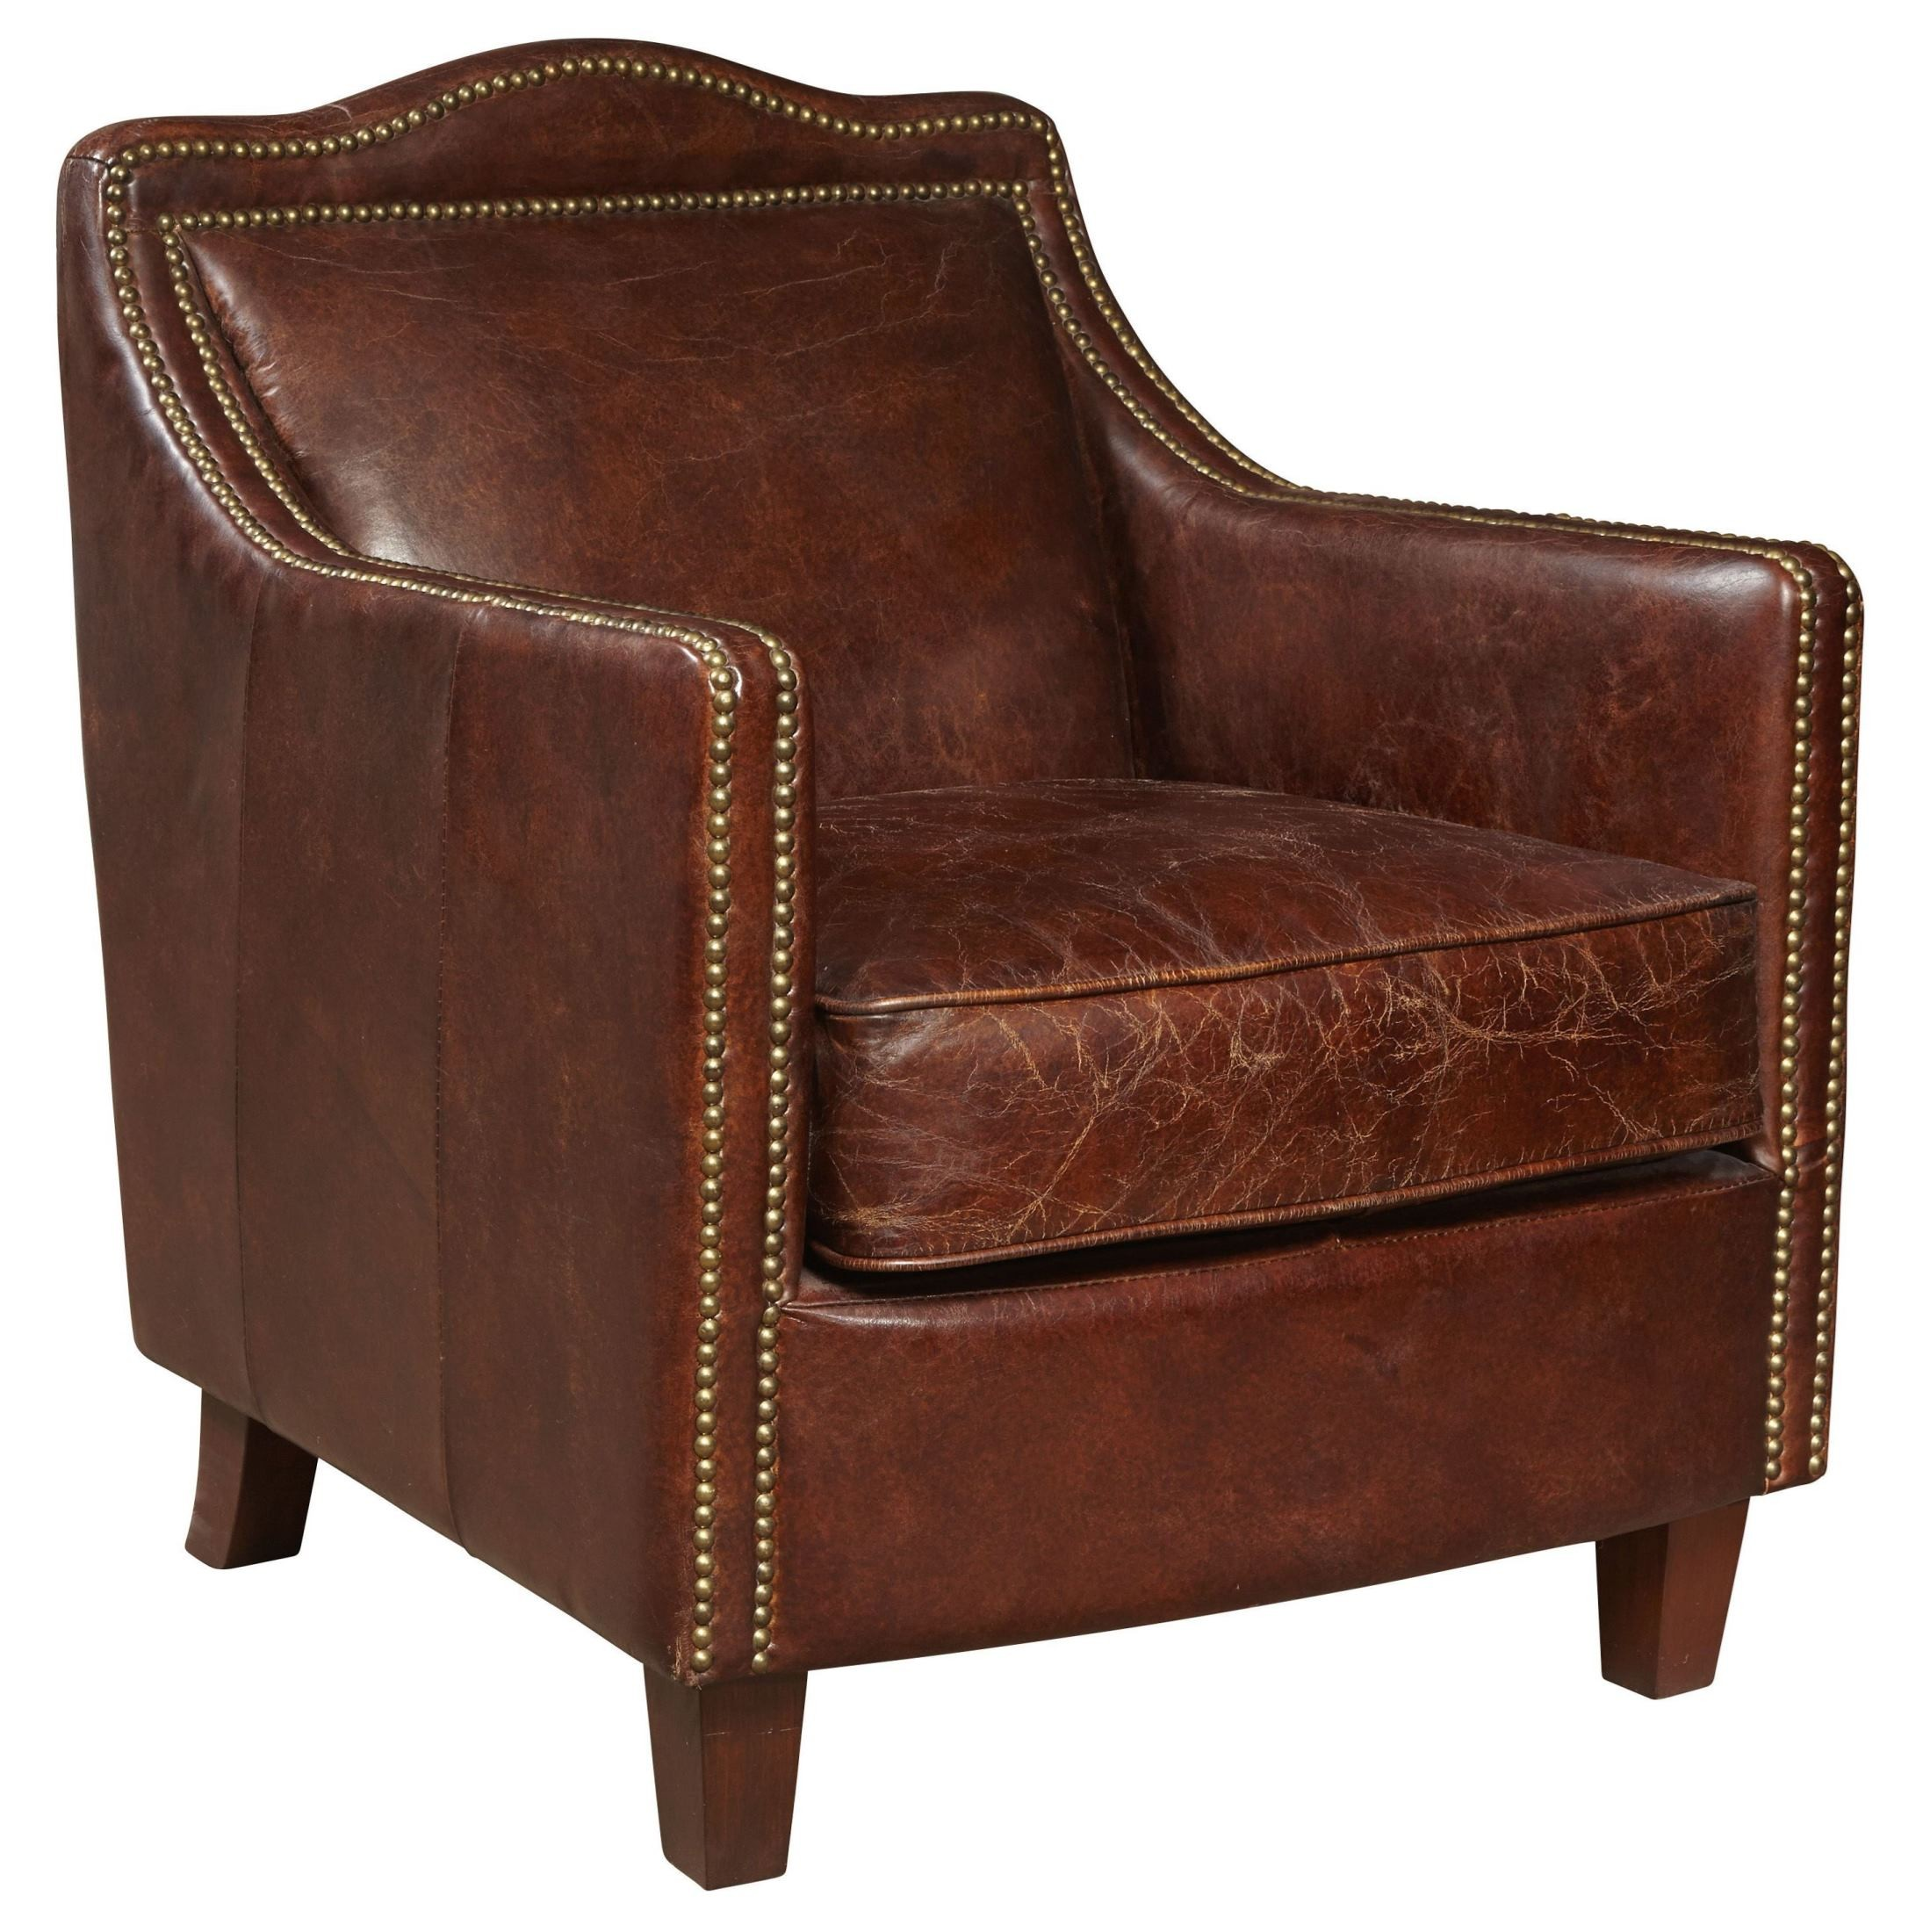 Danielle Brown Leather Accent Chair, P006301, Pulaski